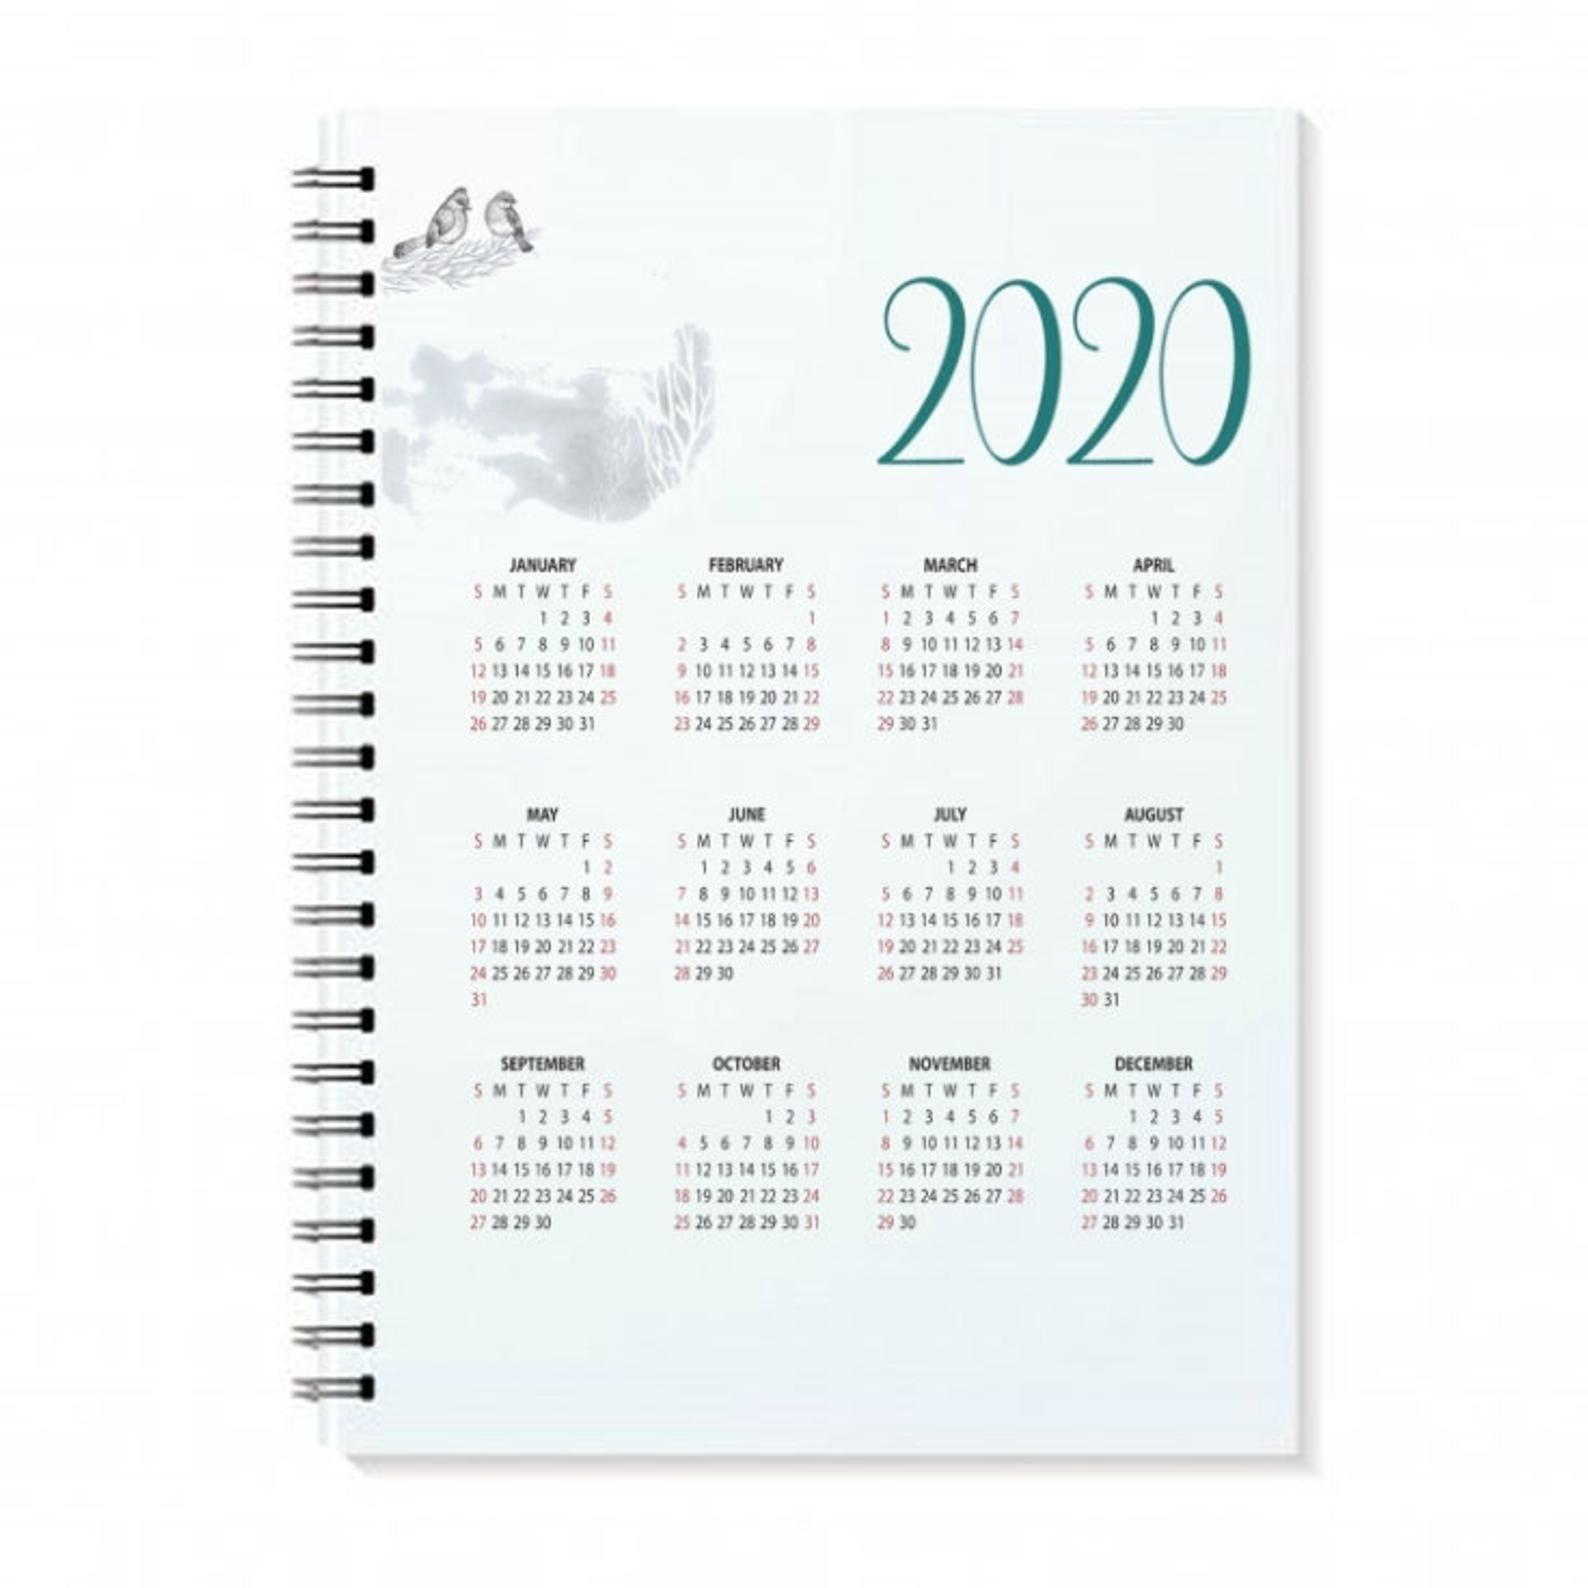 Happy Planner 2020 Calendar printable calendar happy